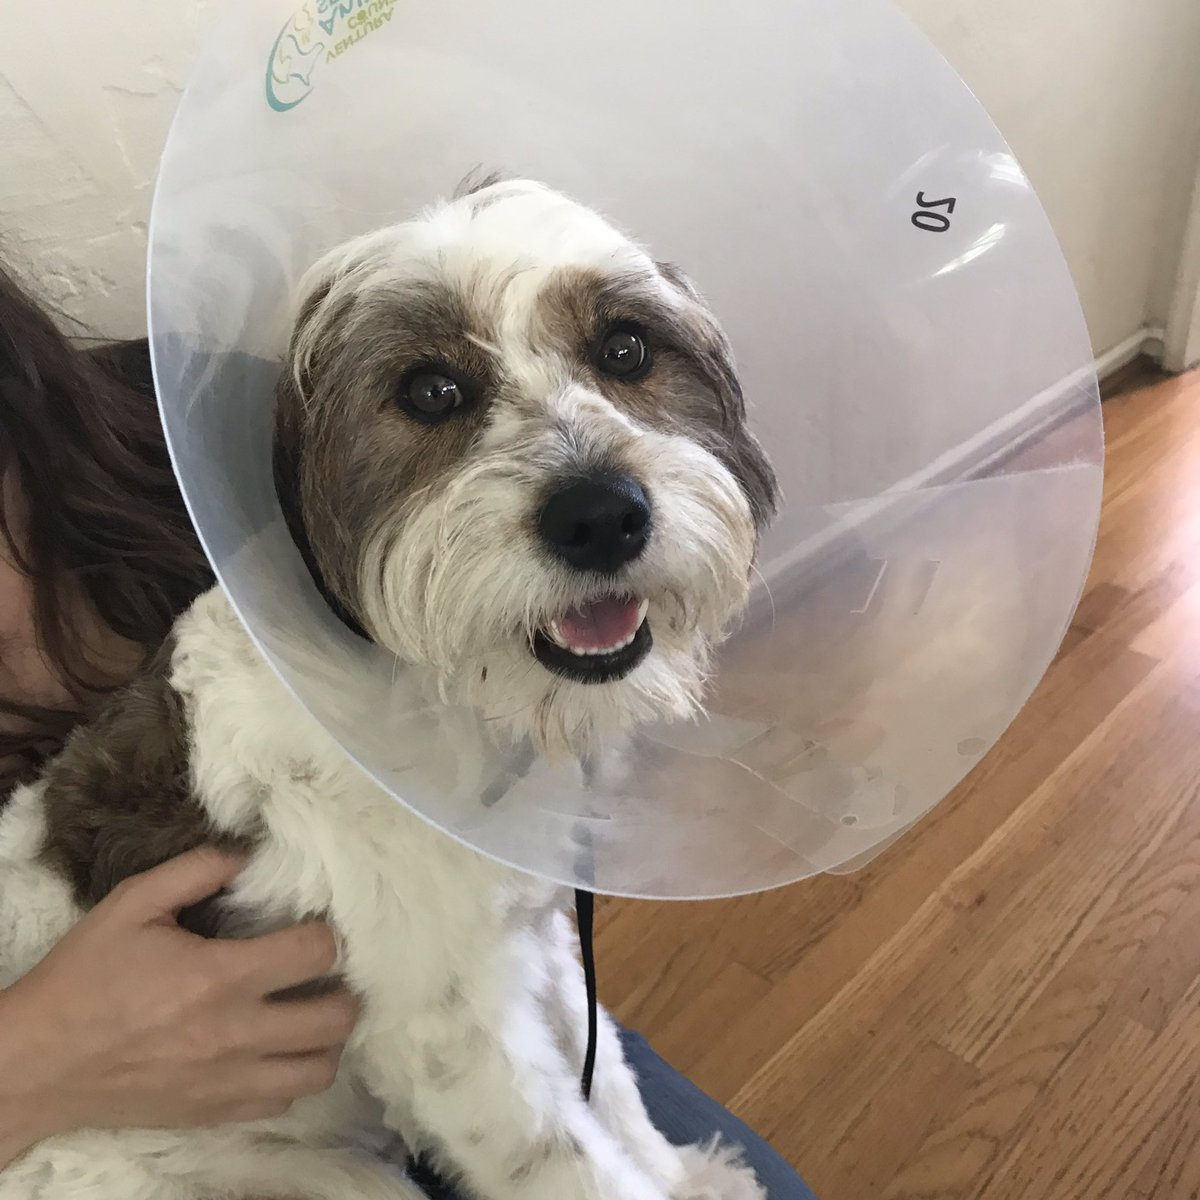 """Larry is a Poodle mix who just got adopted and fixed, thus, the cone of shame he's sporting. He needs to learn all the basics, so we played """"It's Your Choice"""" with him, a training game that shapes a """"Sit To Say Please"""" behavior: dogsavvylosangeles.com/game-based-dog…"""